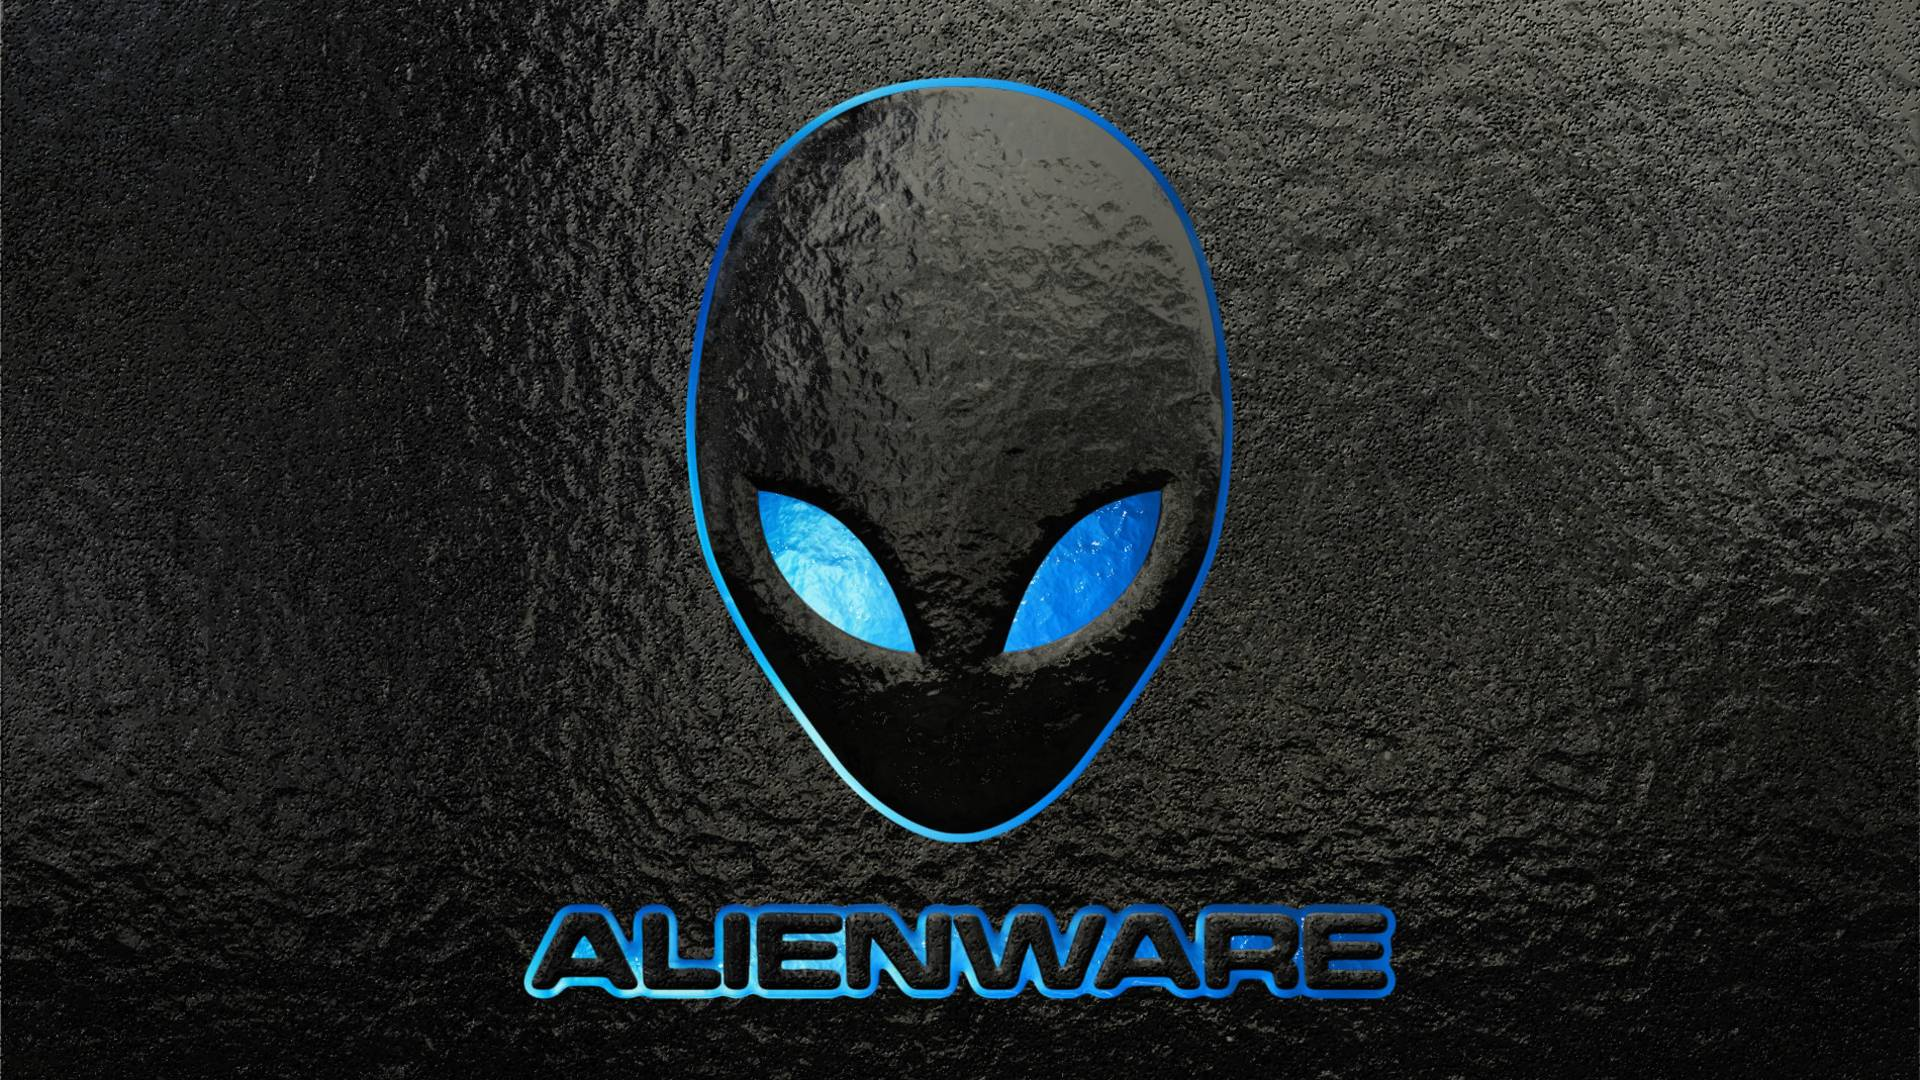 alienware wallpapers free download hd a· alienware wallpapers